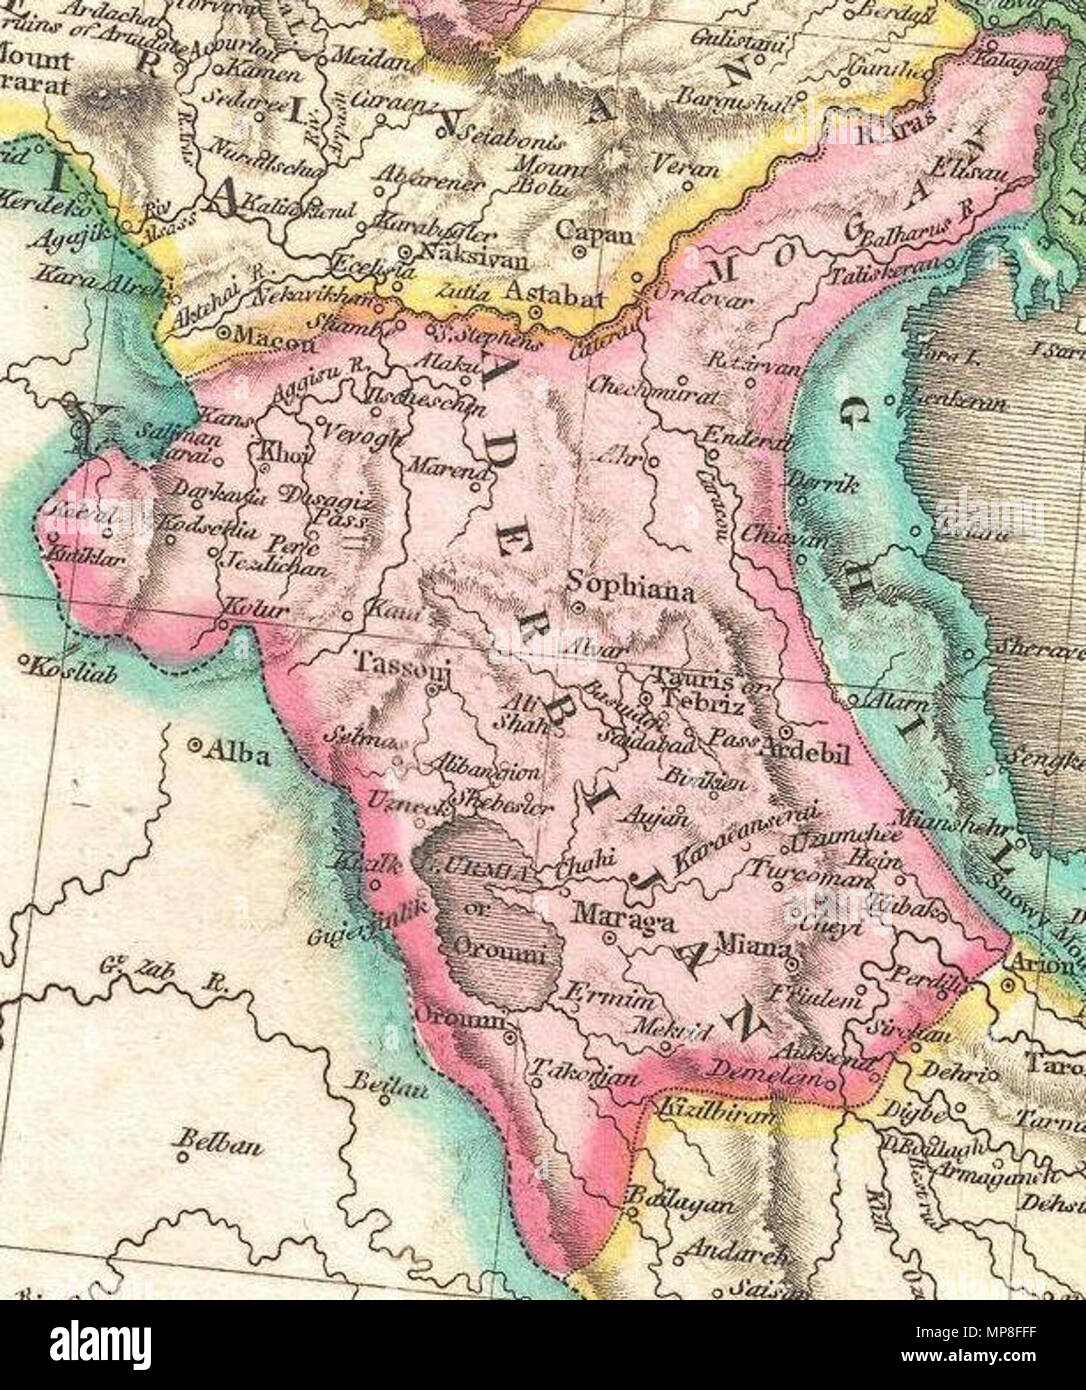 English: A rare and important 1818 map of Persia by John Pinkerton ...